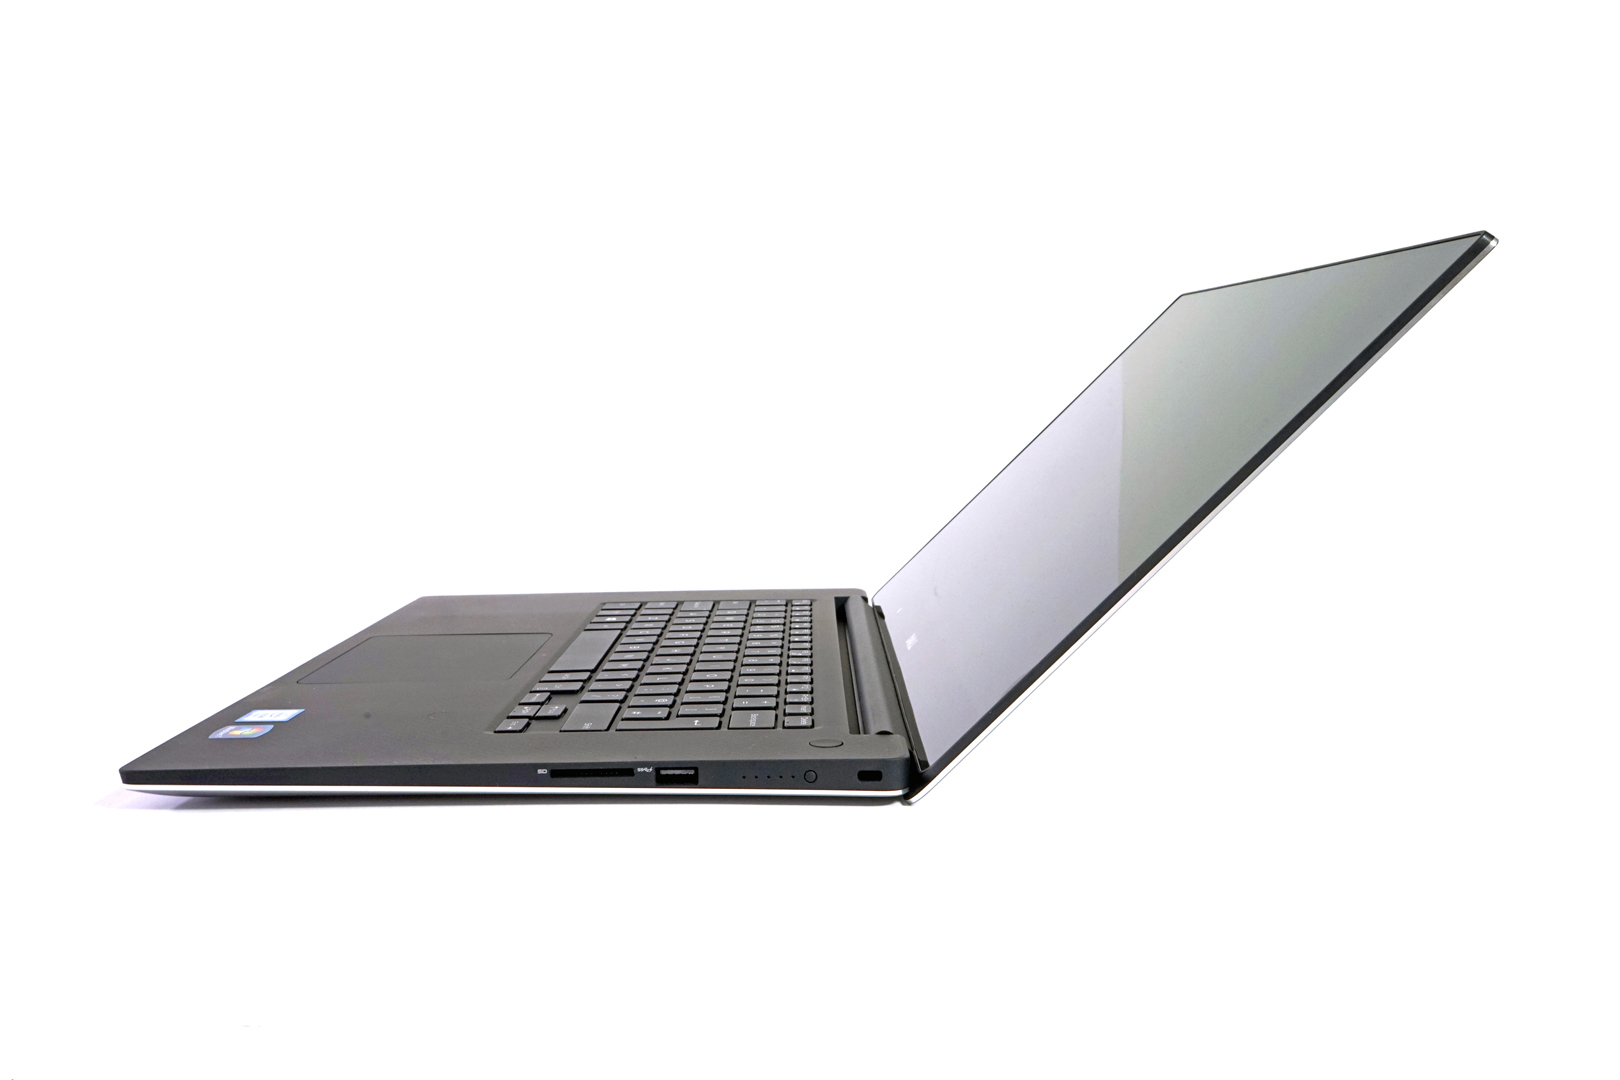 Dell Precision M5510 15.6 inch Nvidia M1000M Windowns 10